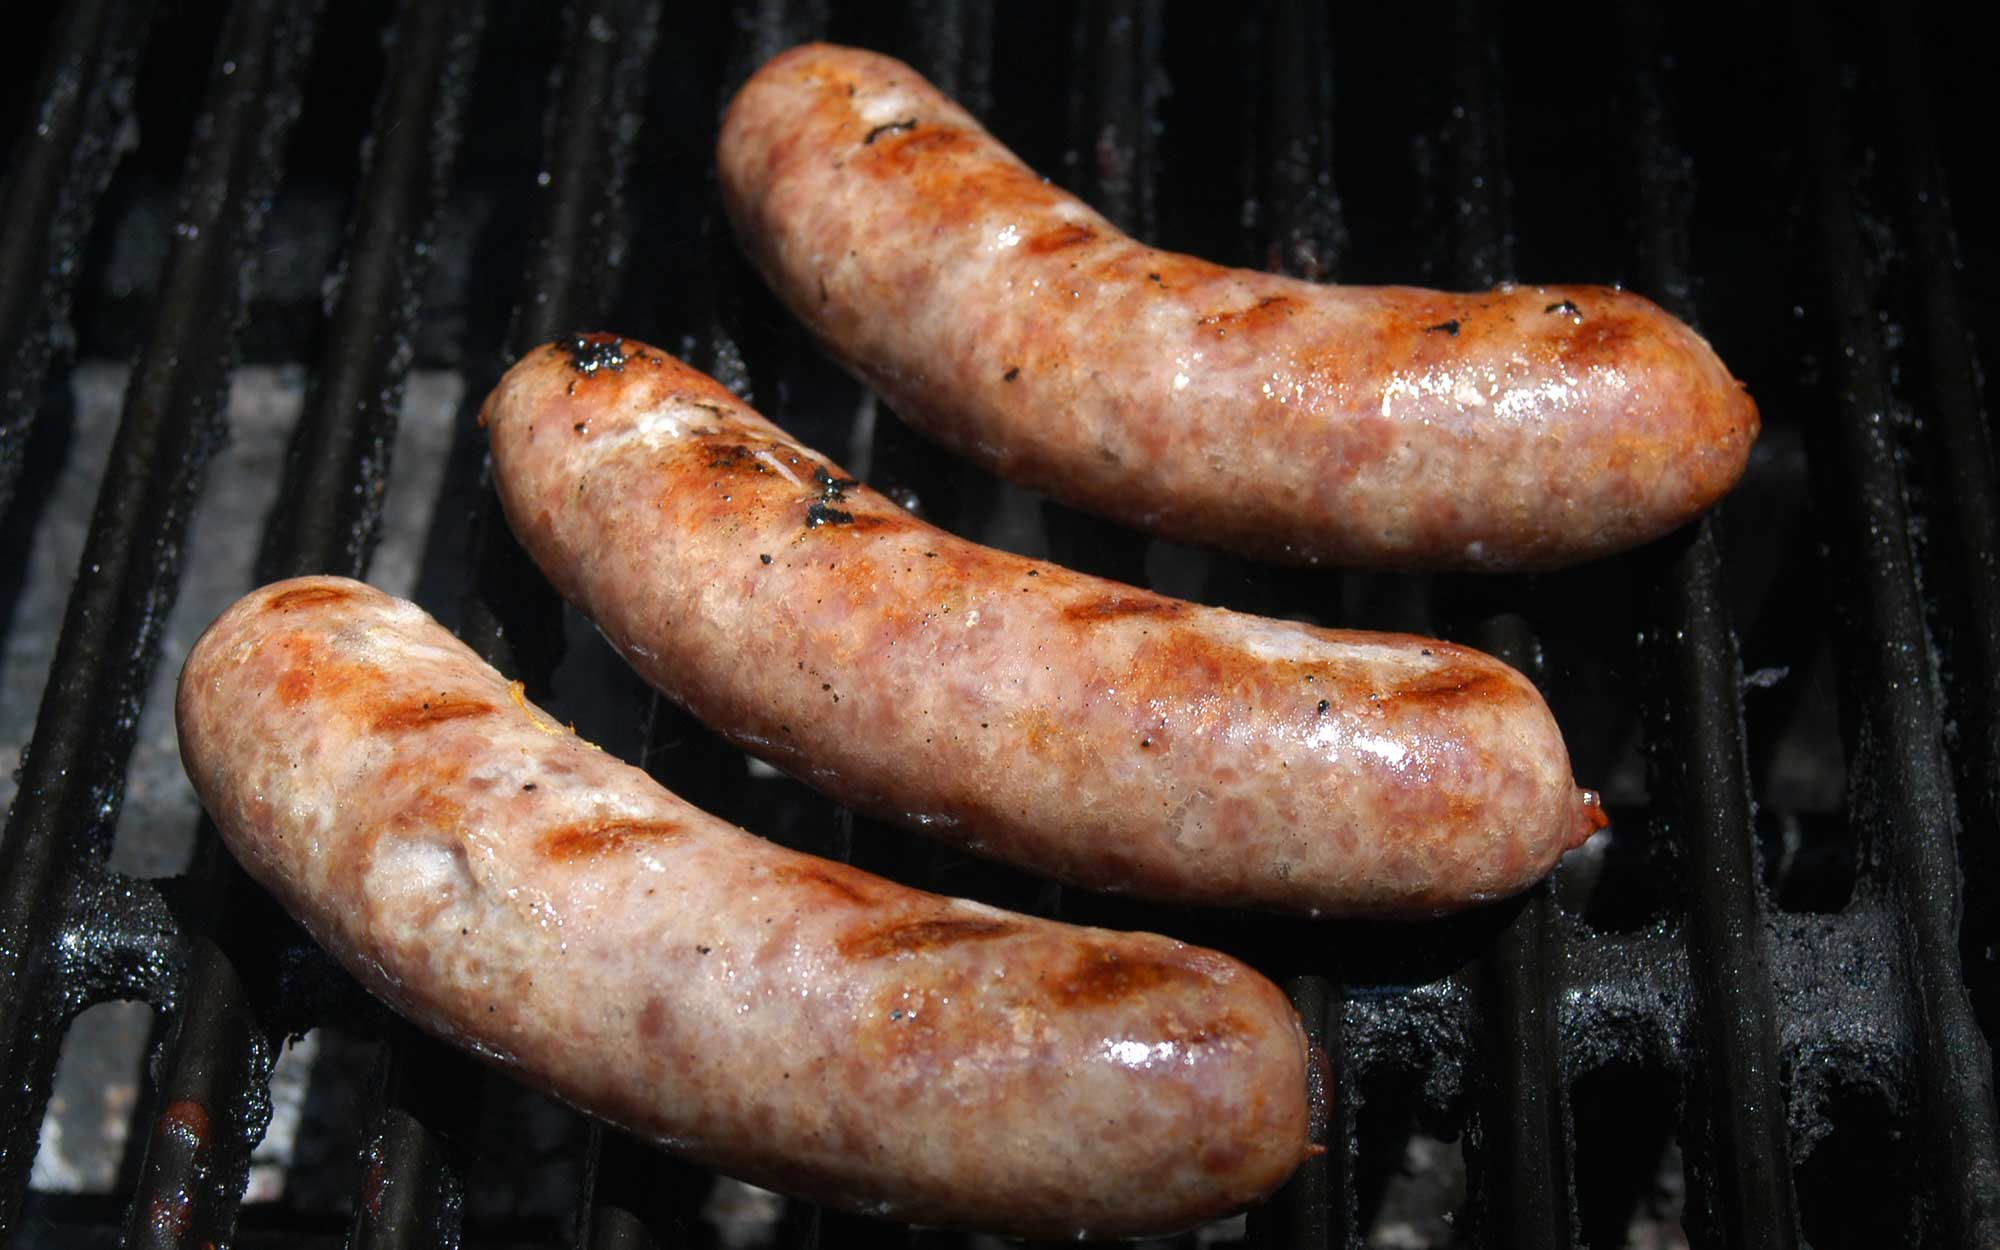 Grilling: Brats on the grill